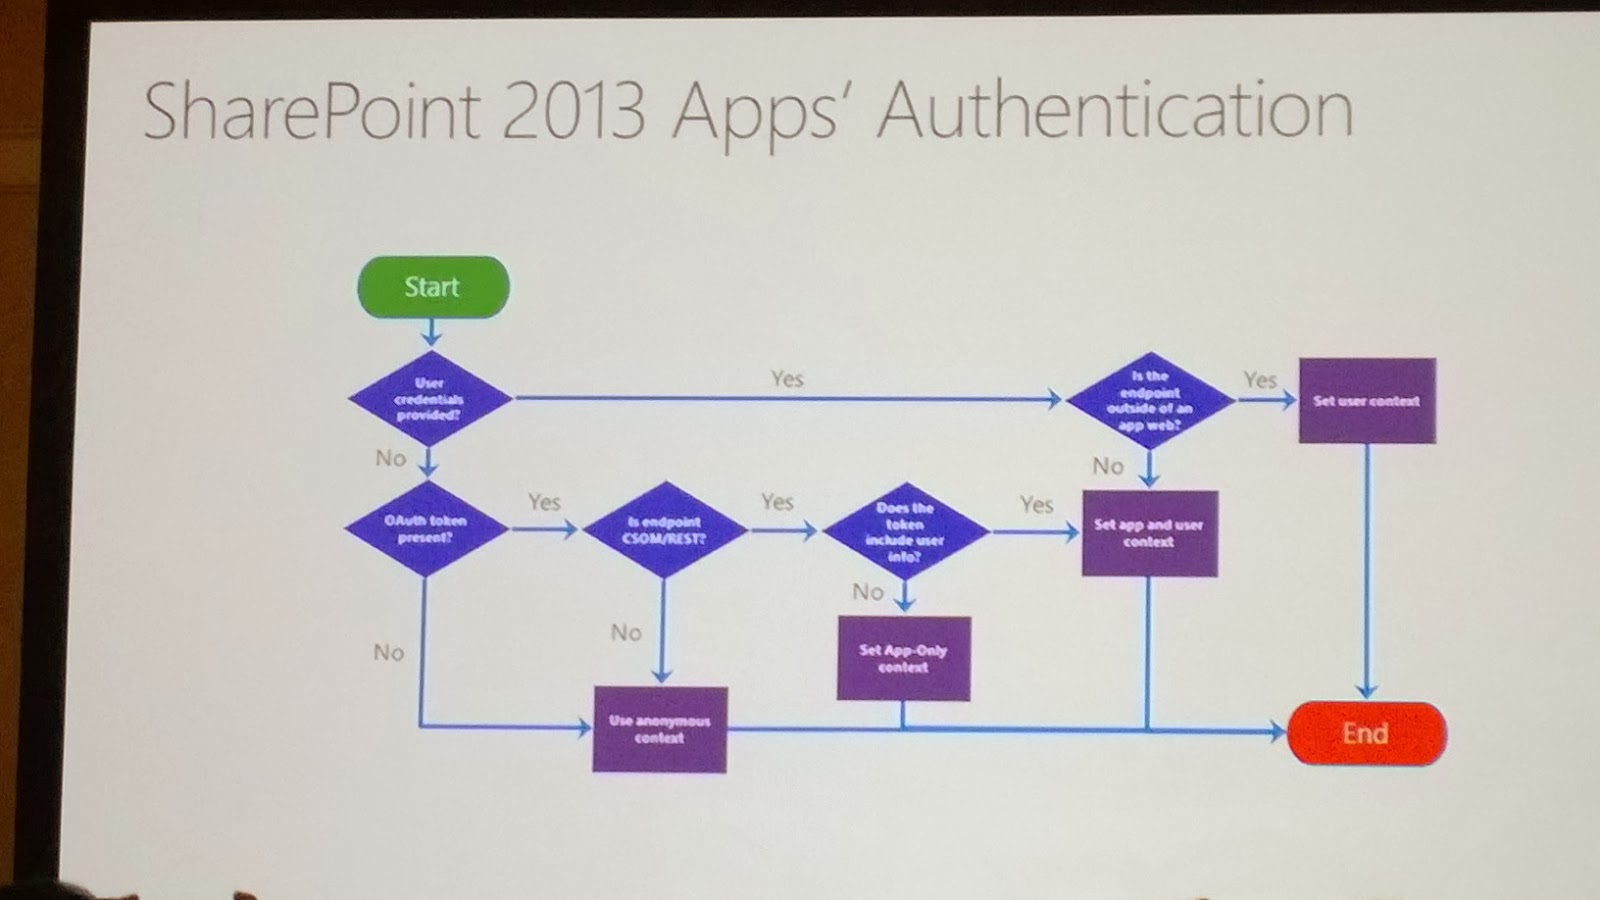 TrustSharePoint: Notes from SPC14: Authentication and